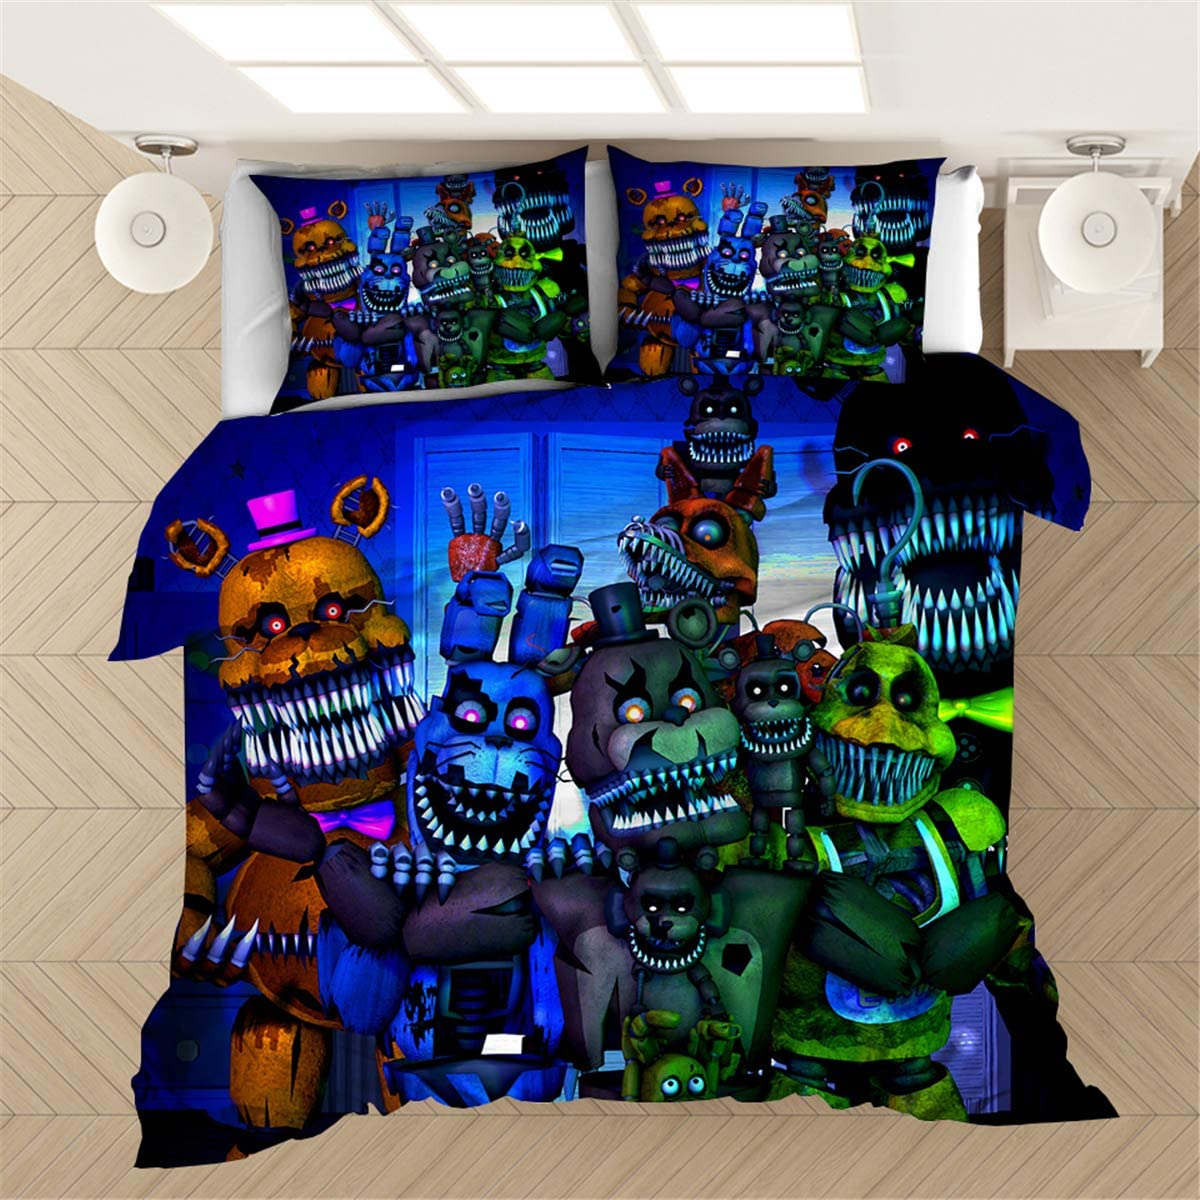 Coo-kid Five Nights at Freddy's Duvet Cover Set-3 Piece Bedding Duvet Cover Set for Kids-Soft Lightweight Quilt Cover